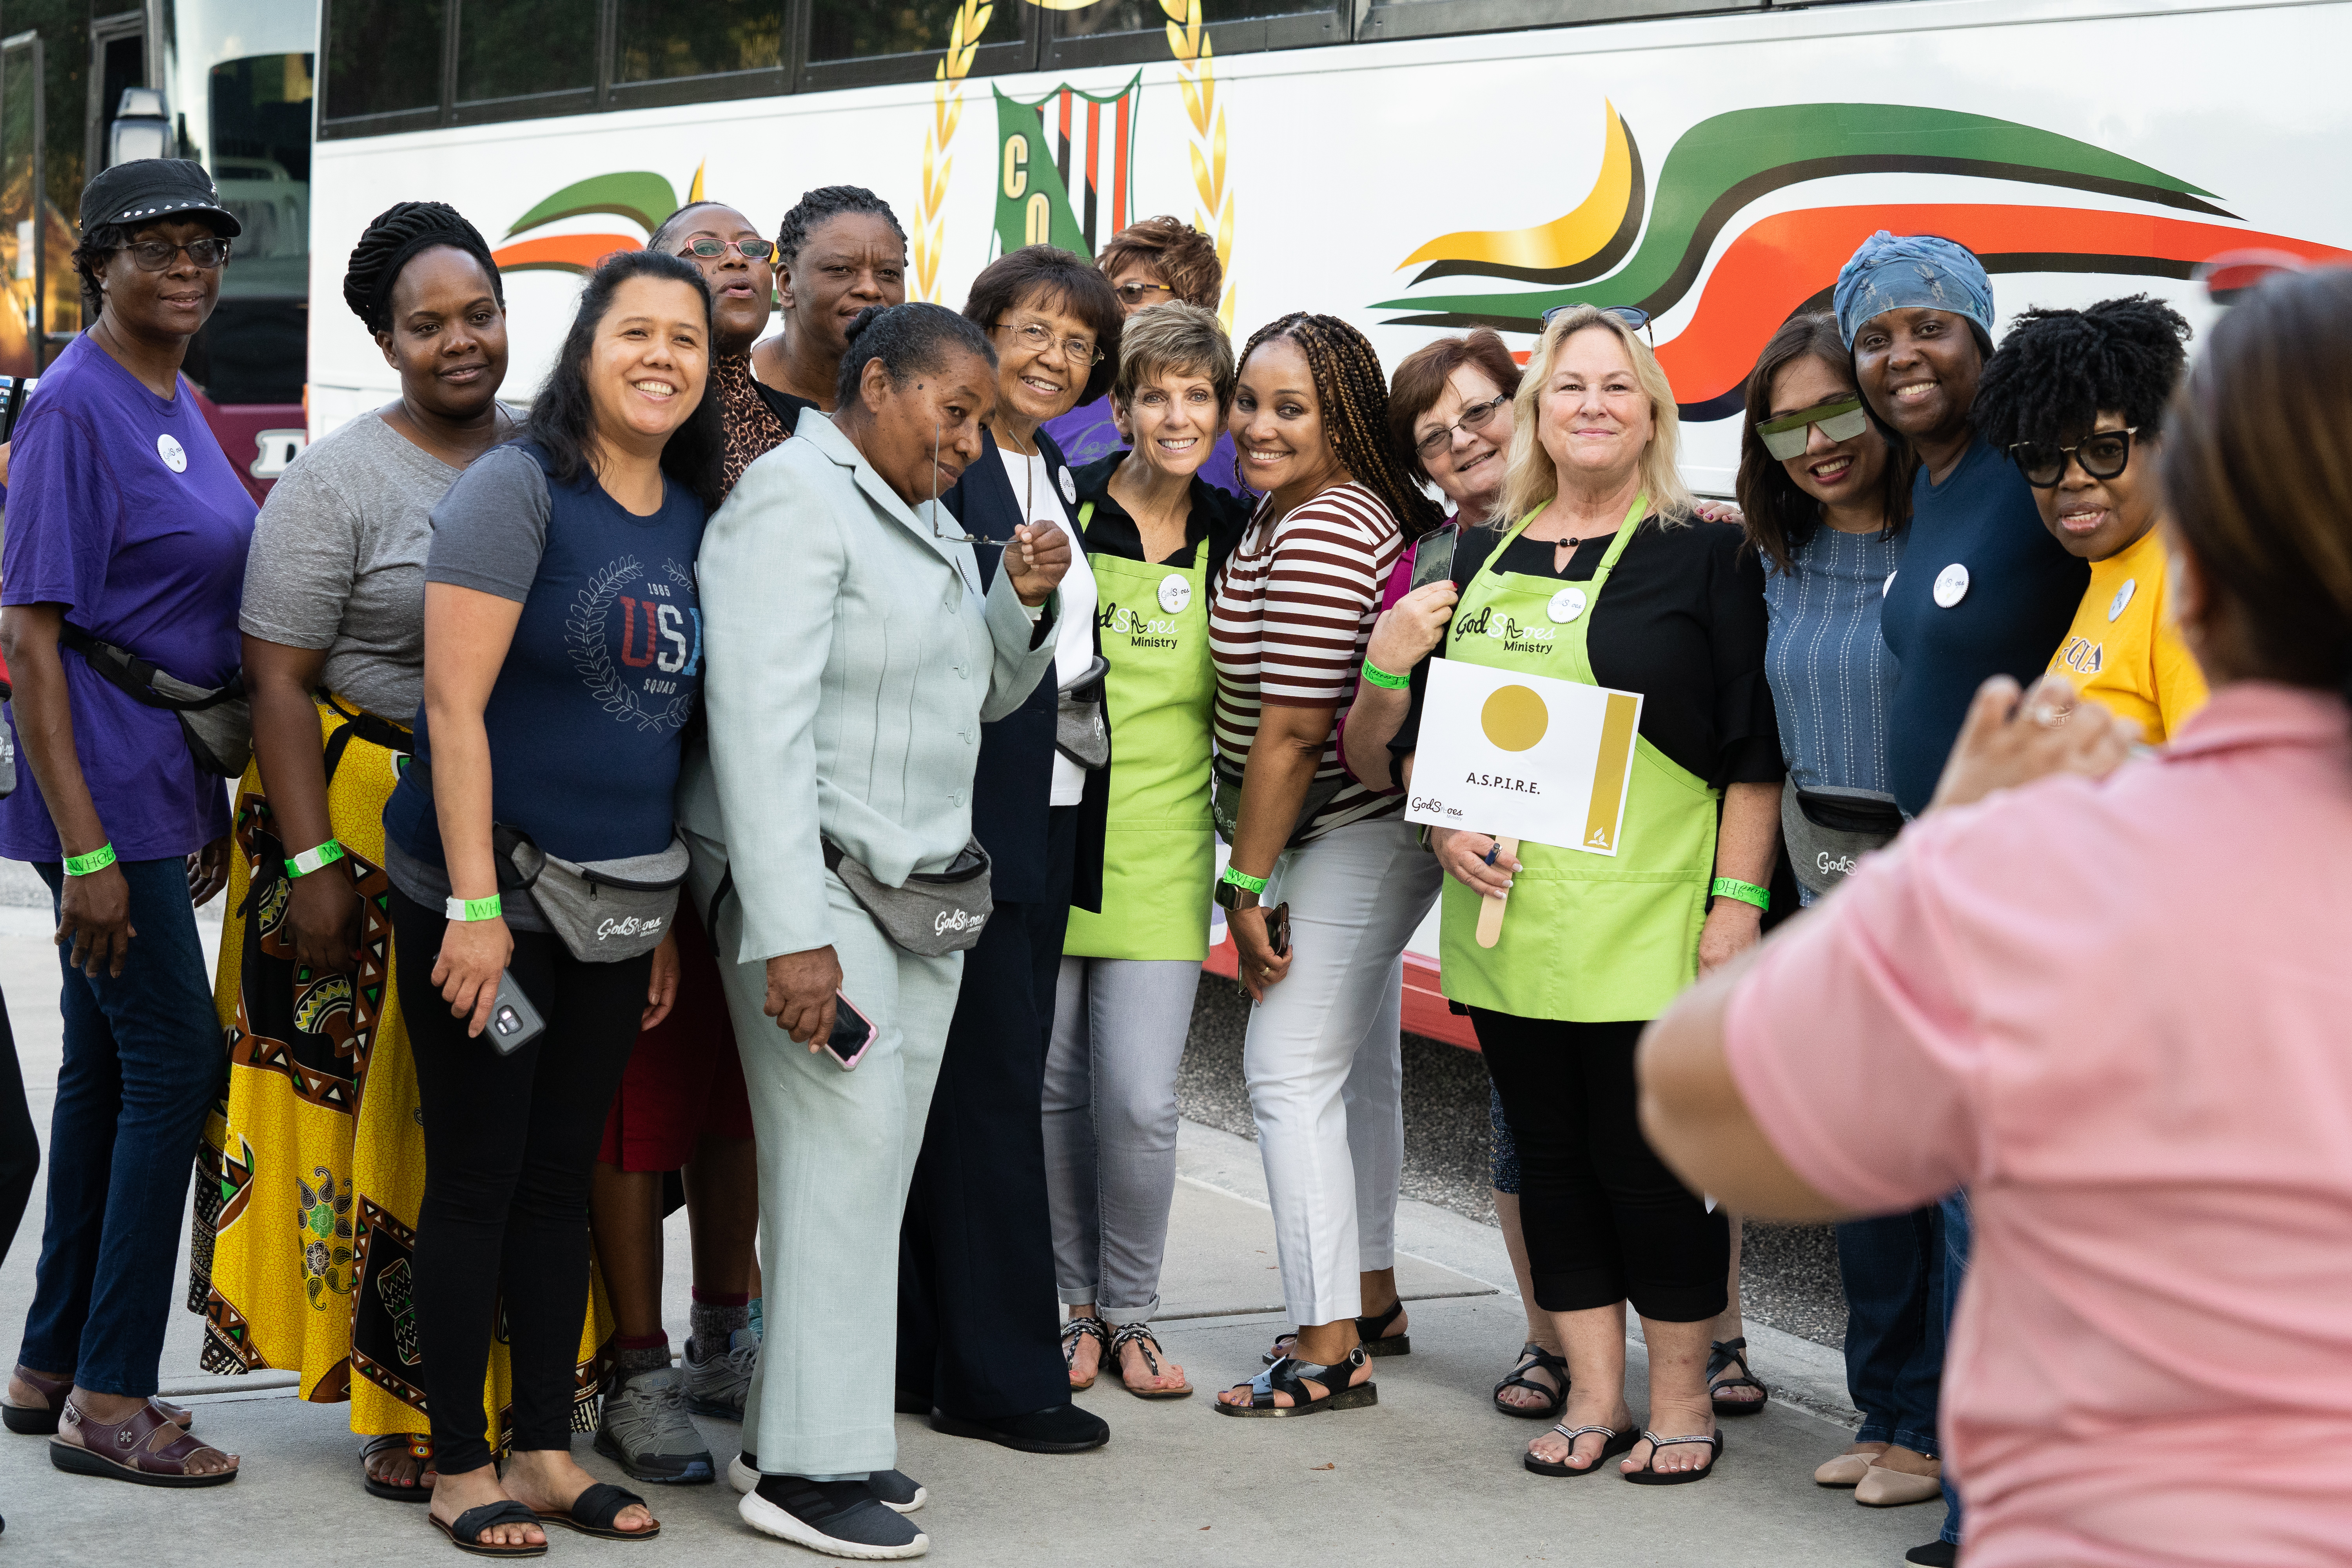 Jo Dubs (center), founder and director of God in Shoes, poses with a group of volunteers preparing to leave the convention center for their service assignment.